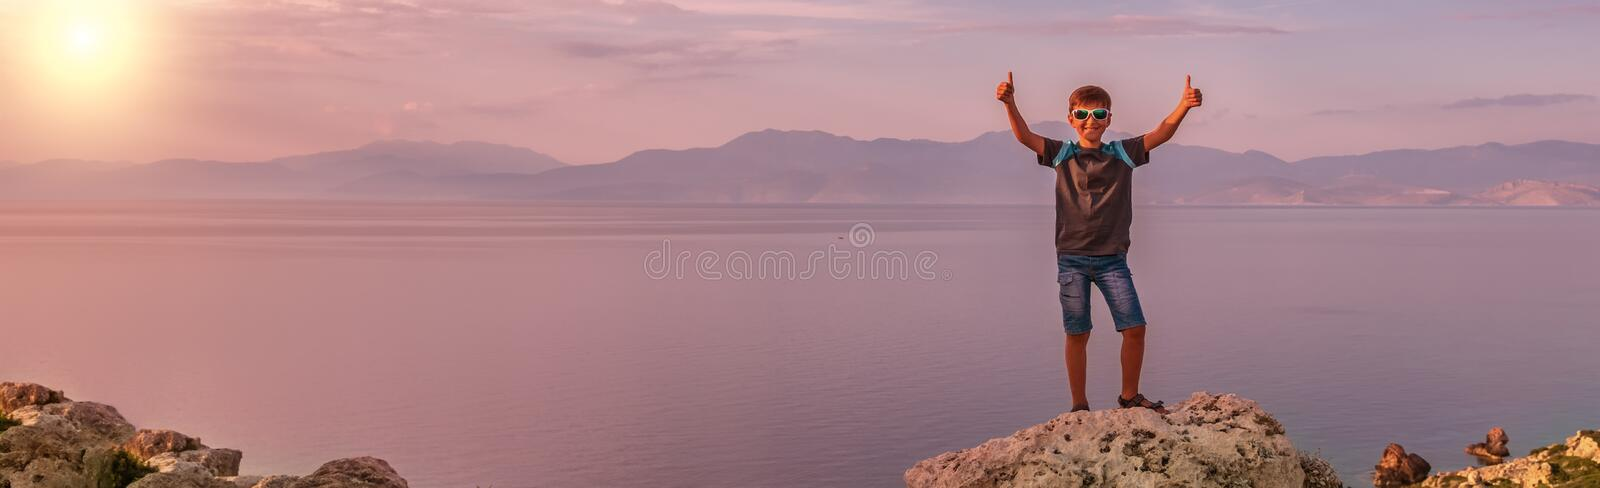 Young boy traveling along the coast of the Mediterranean Sea stock photo